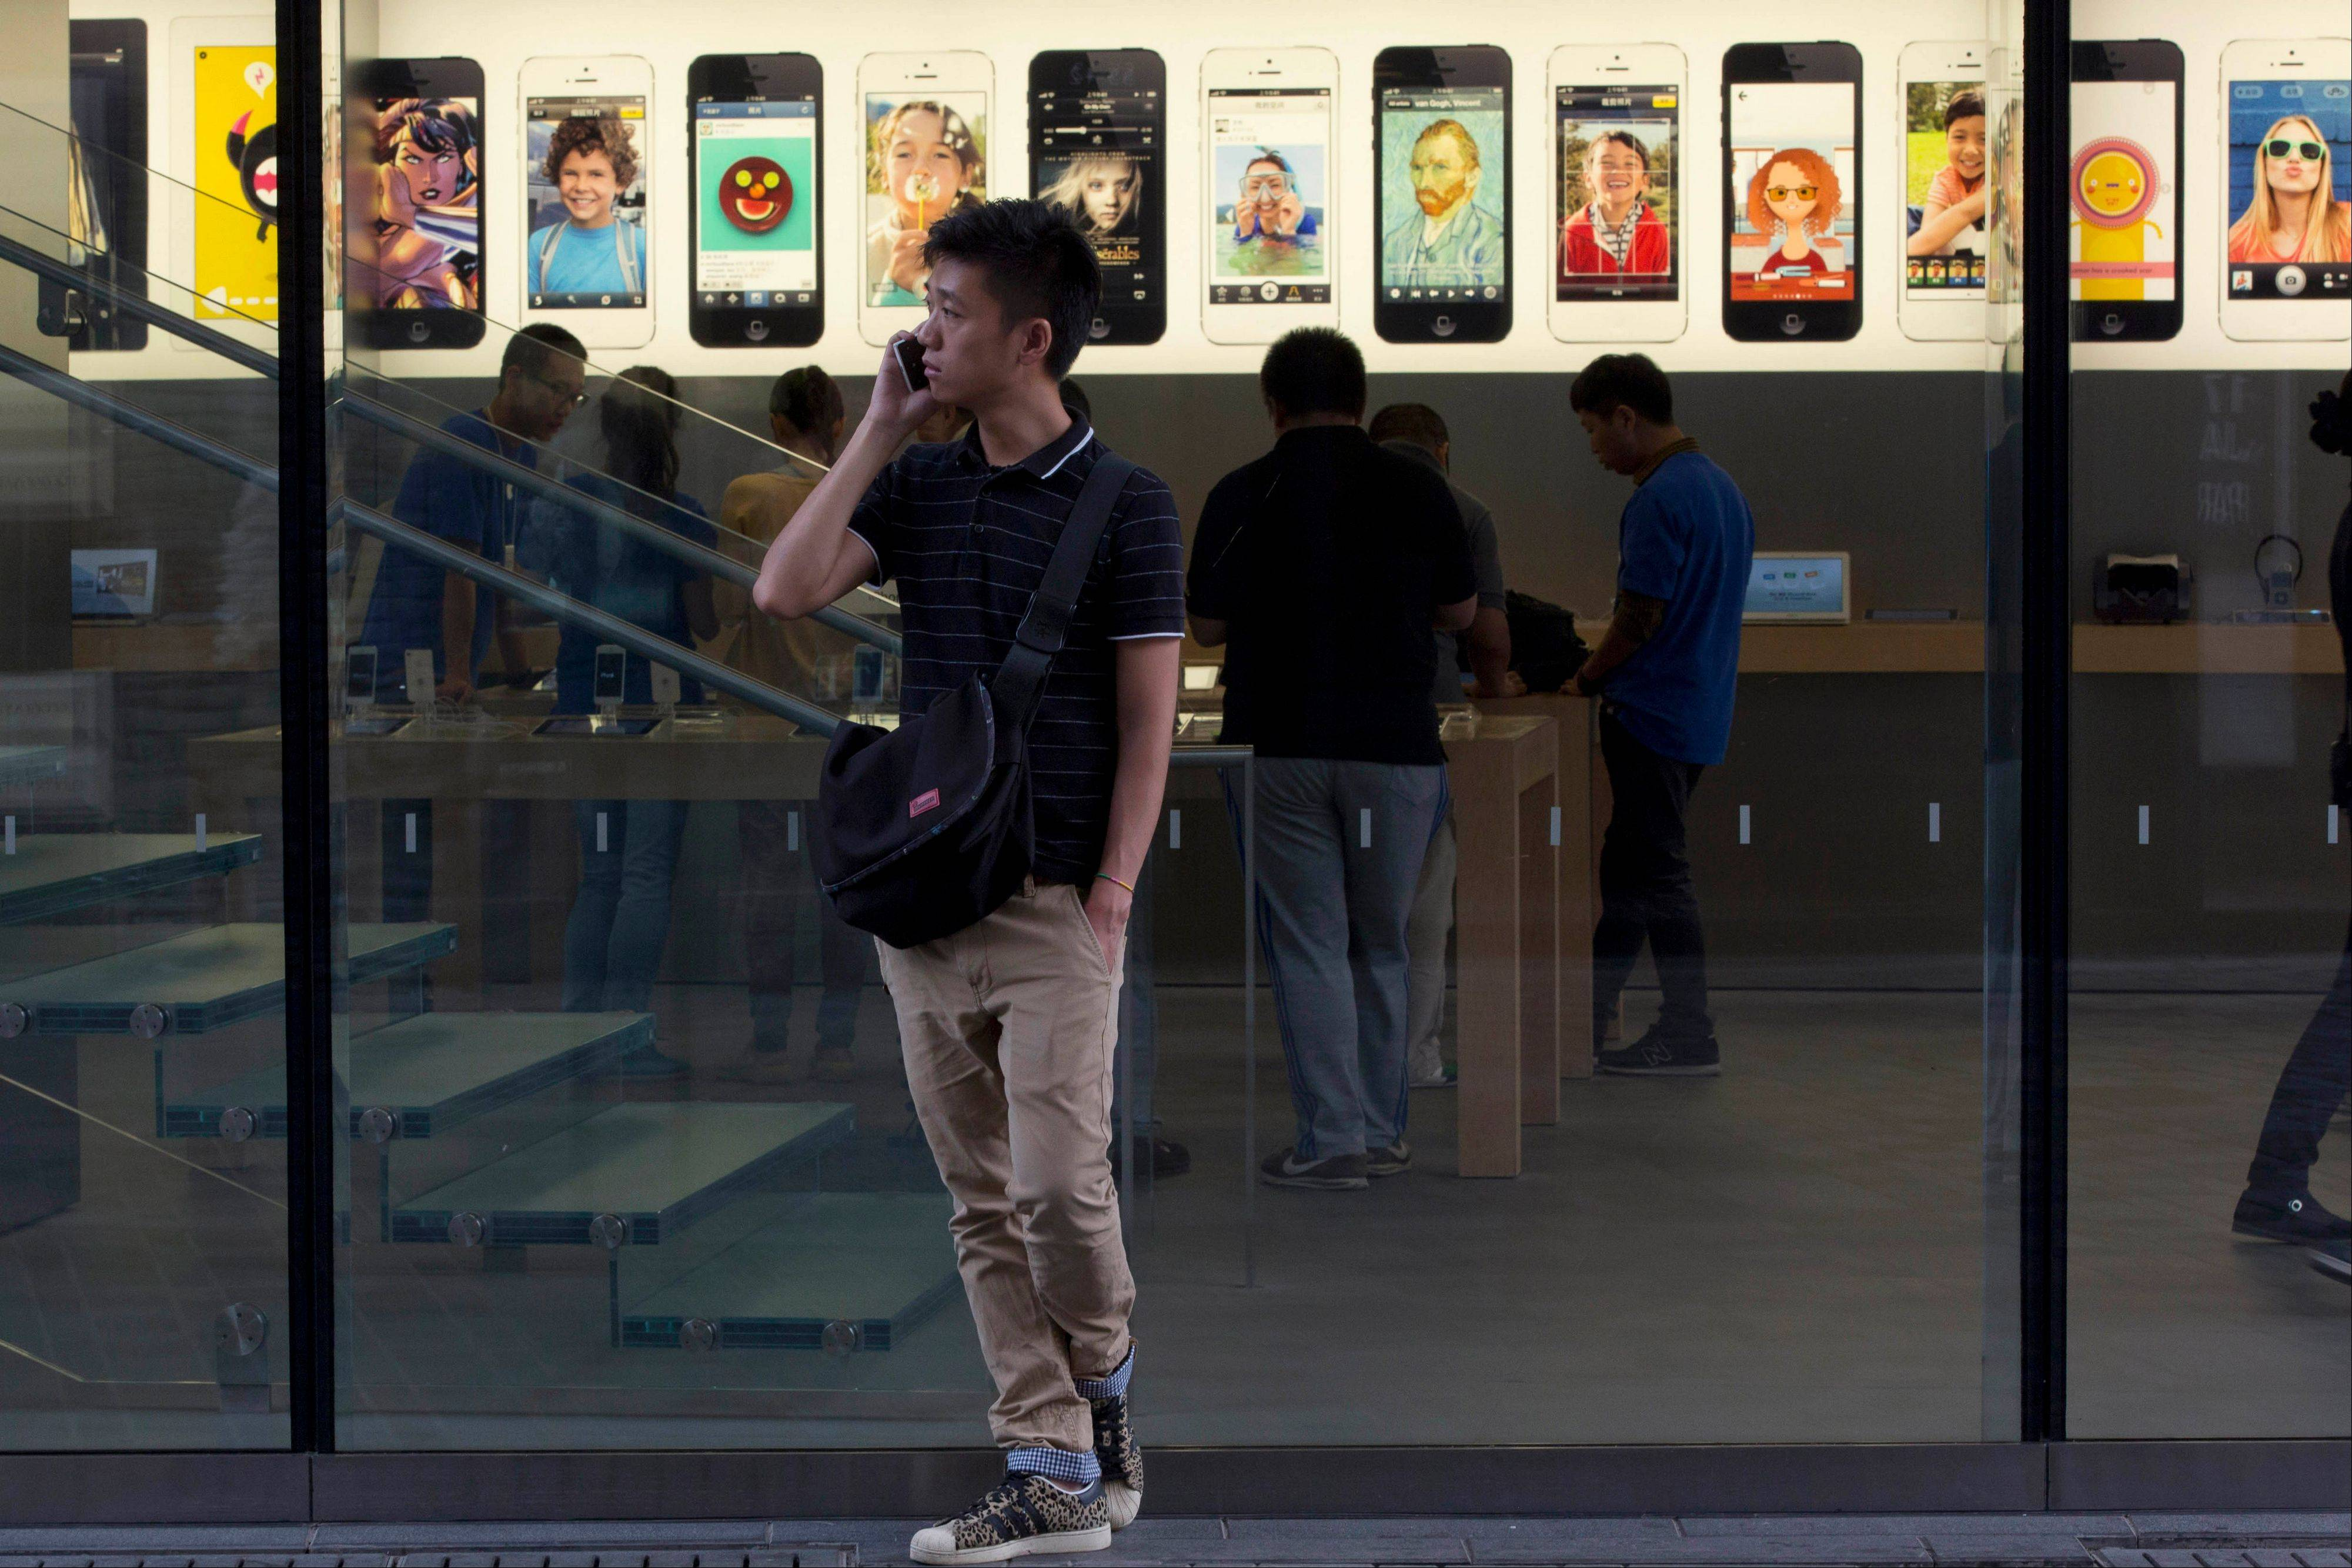 A Chinese man uses a non-Apple branded mobile phone Thursday outside a store with iPhone advertisements in Beijing. Many Chinese gadget lovers responded with a shrug when Apple Inc. unveiled two its new iPhone 5 this week. Today�s market is glutted with alternatives from Samsung to bargain-priced local brands.